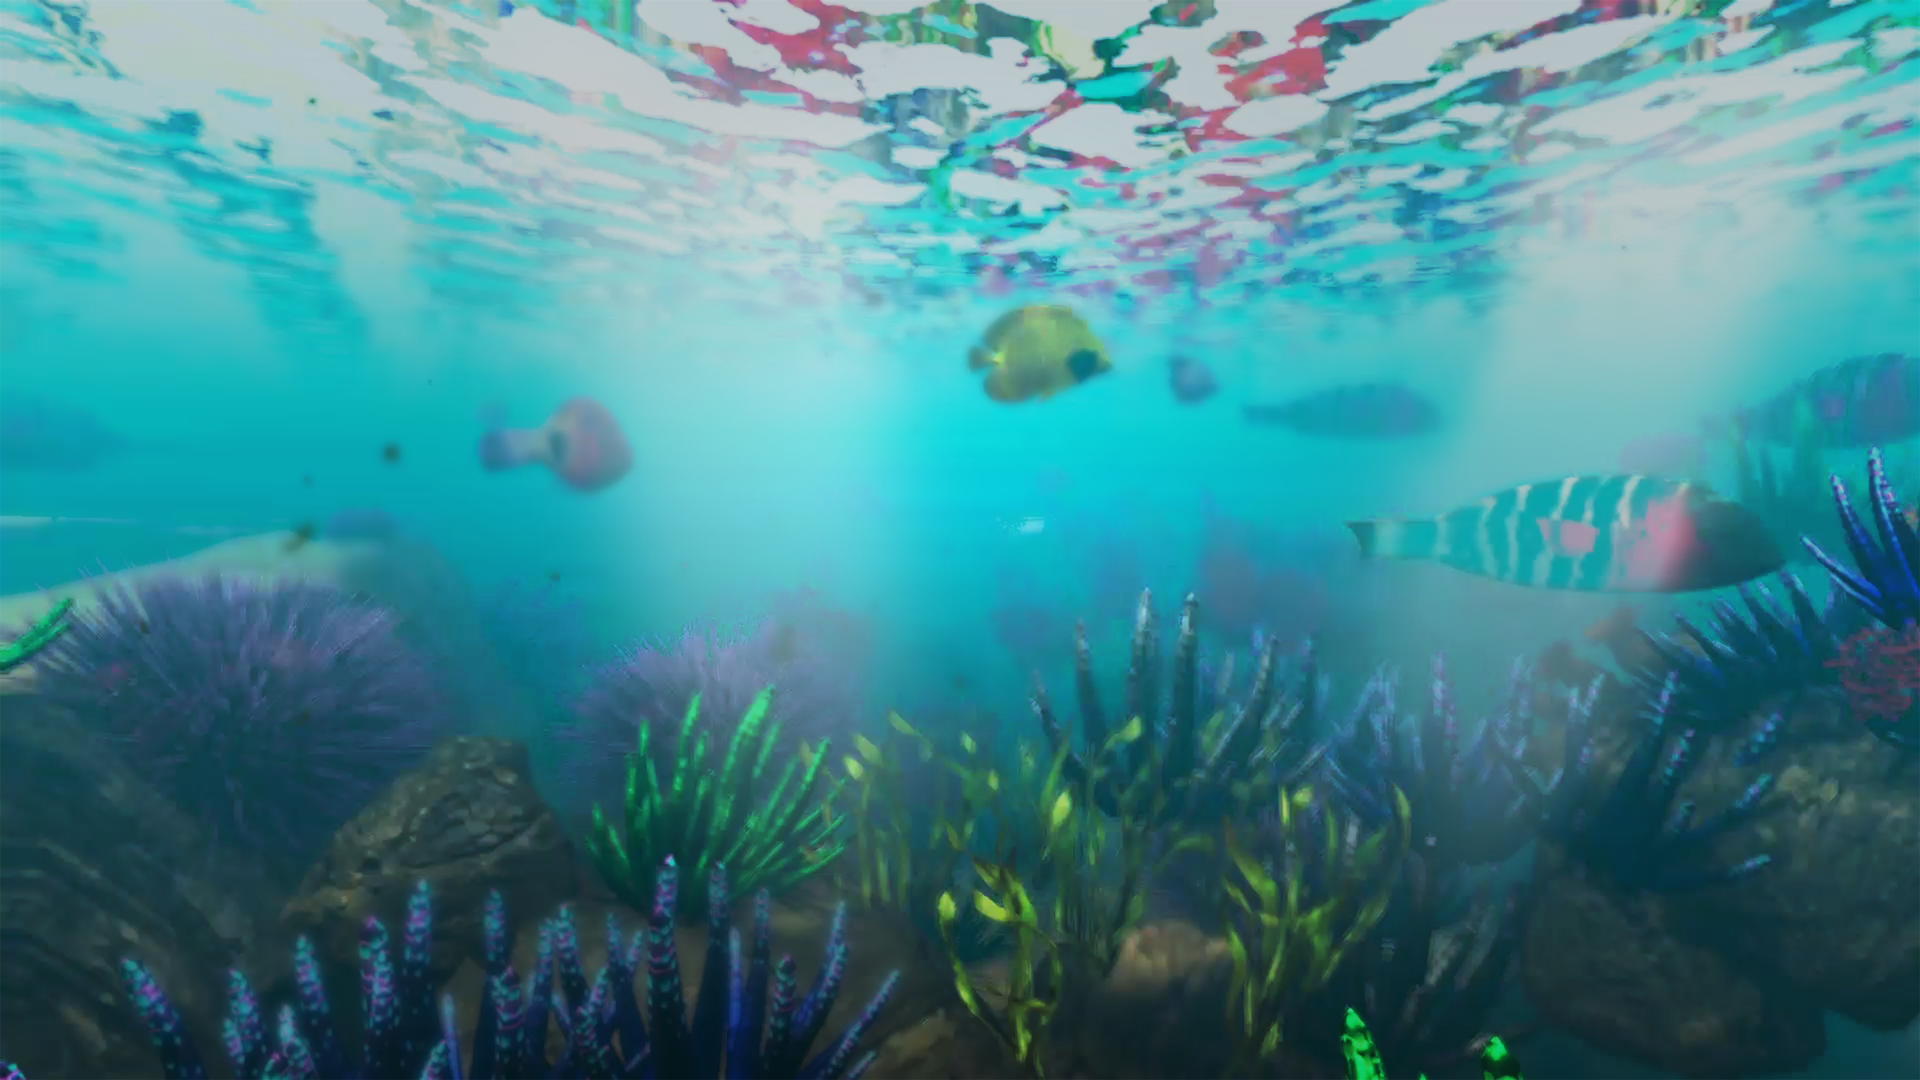 Underwater Visualisation